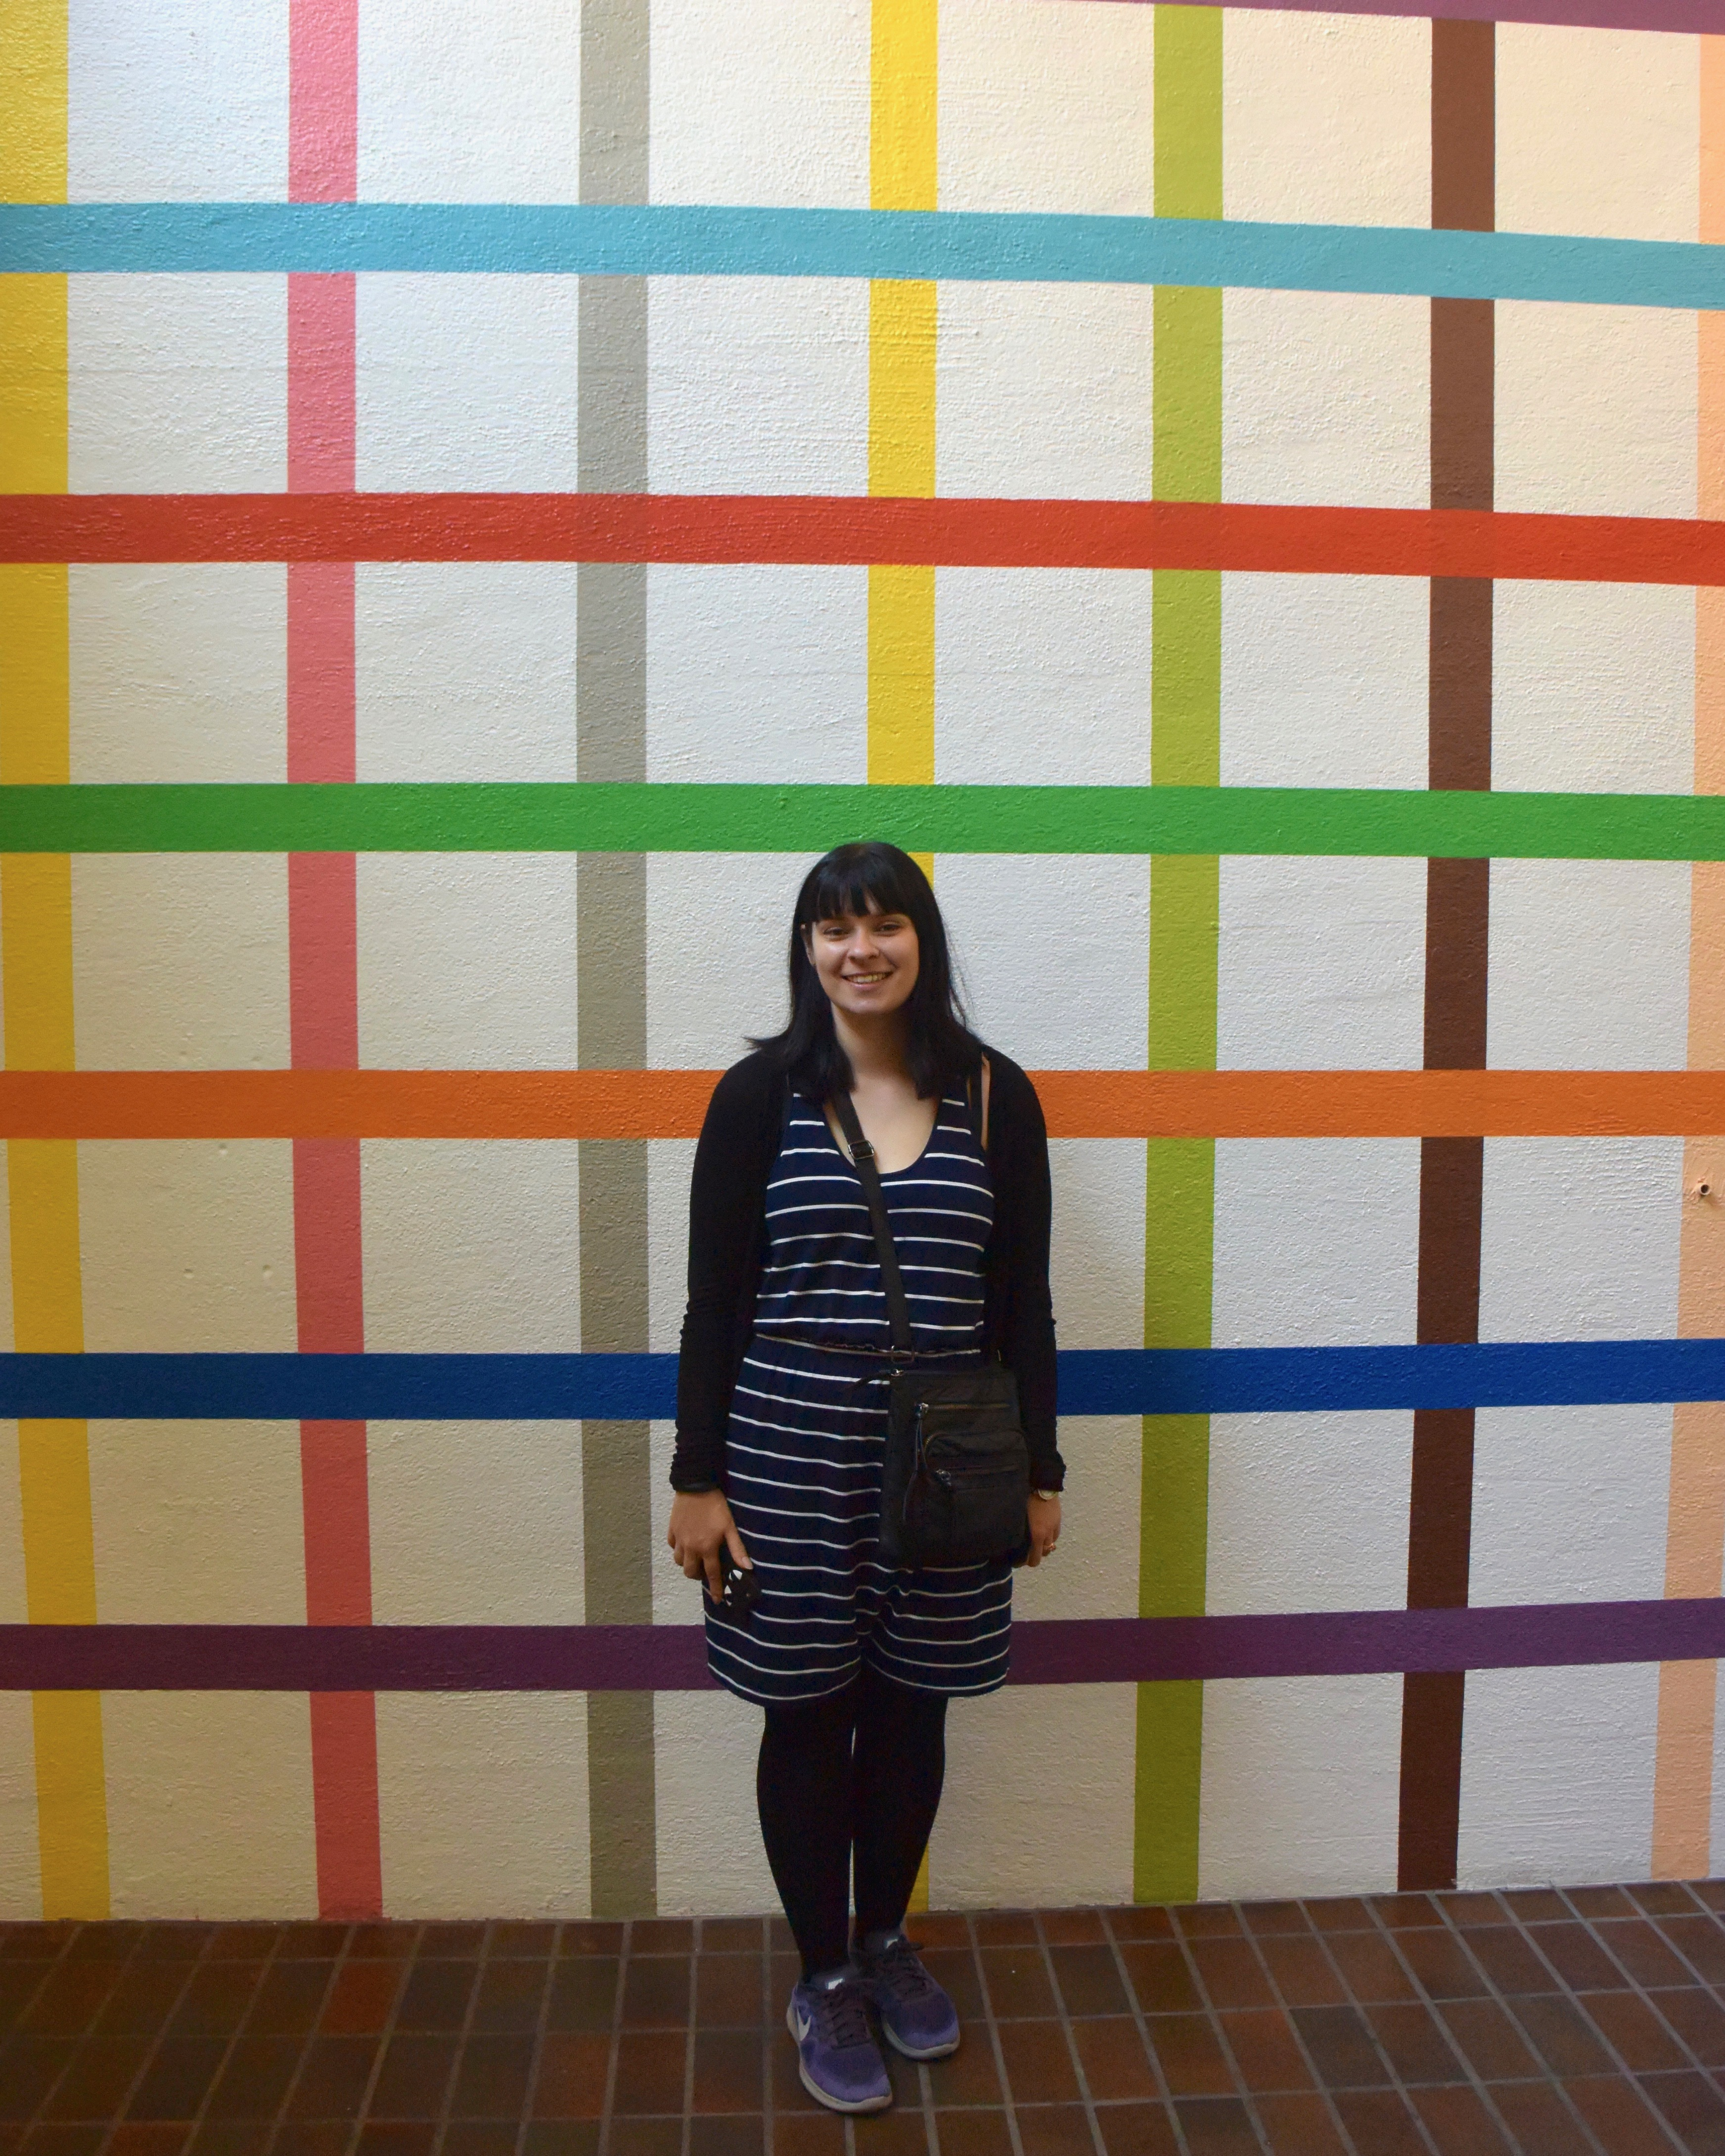 color factory - wall